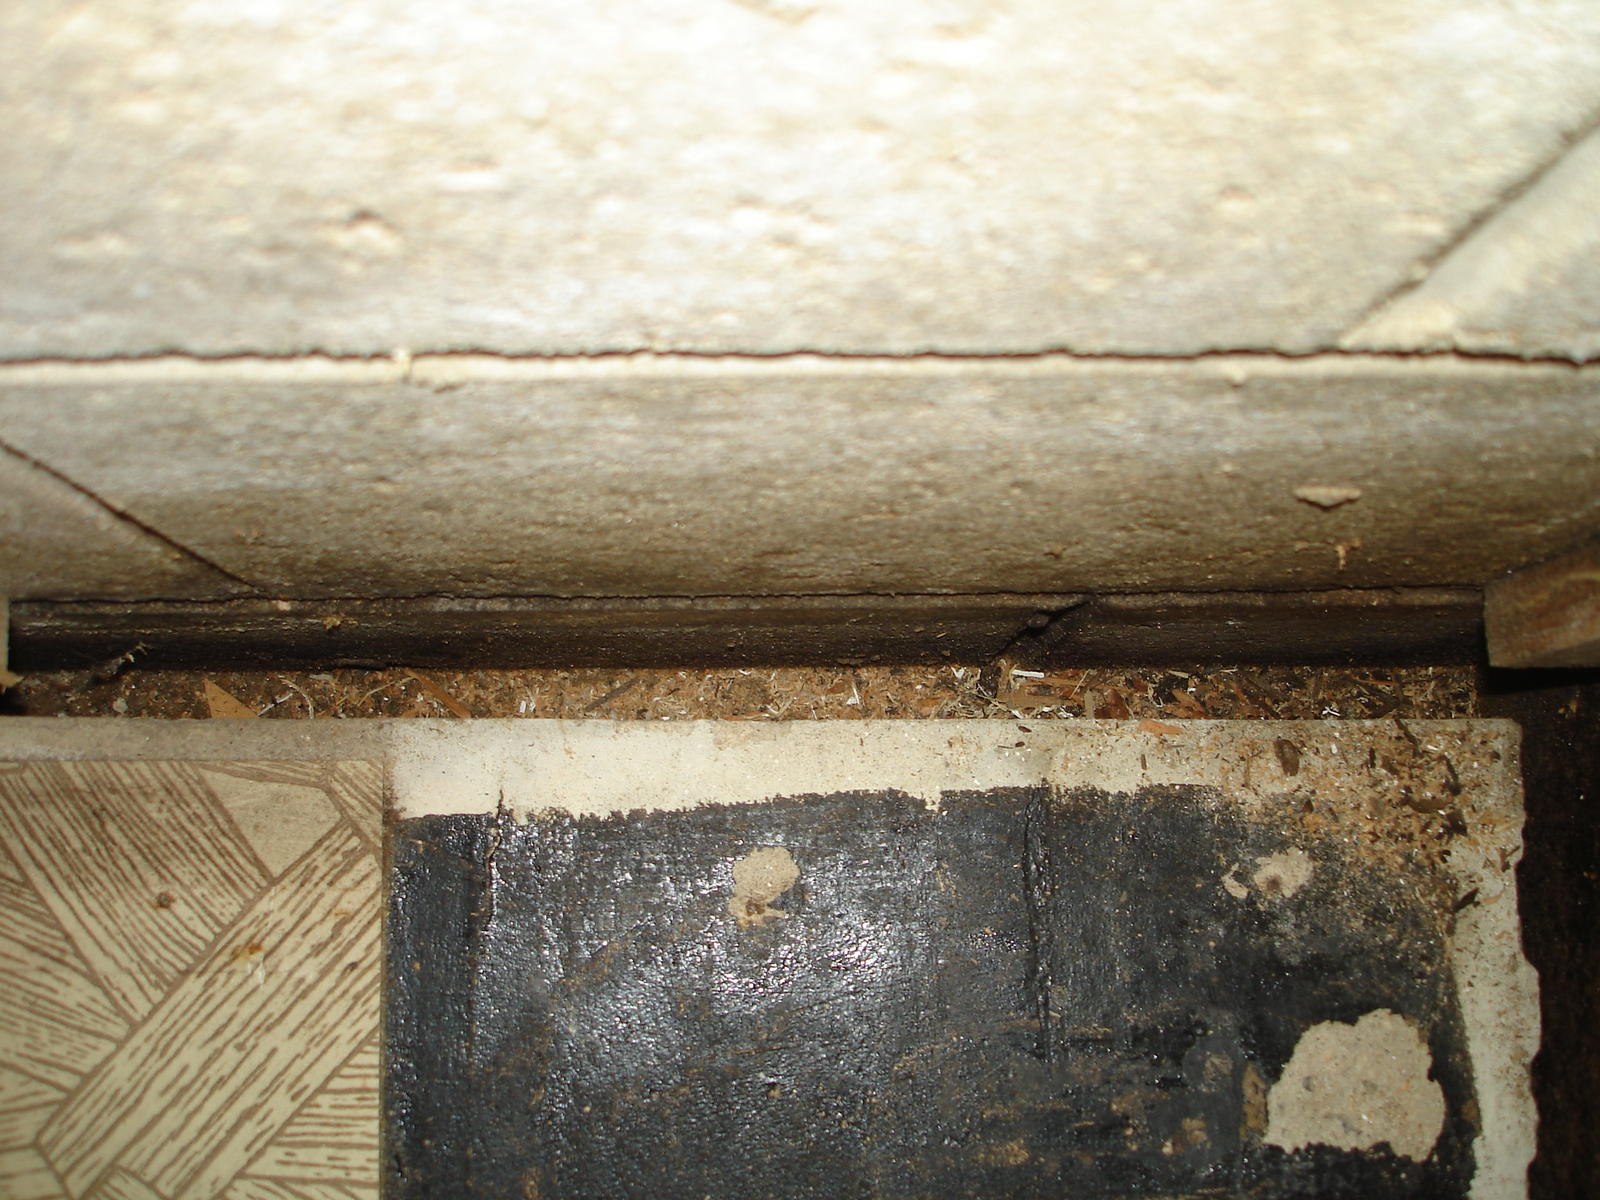 Gap between slab and basement wall flooring foundation for Slab foundation vs basement